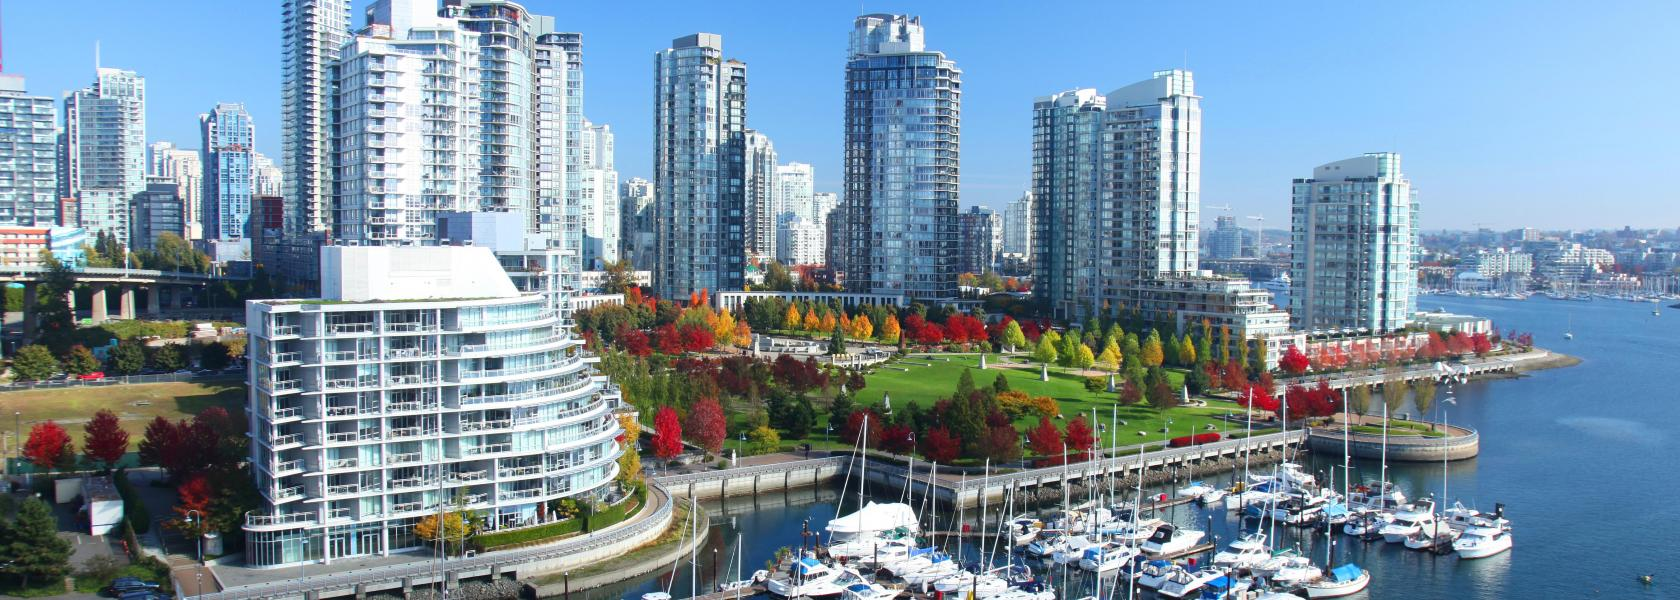 Explore Yaletown - a Fun, Cultural & Vibrant Urban Neighbourhood 2